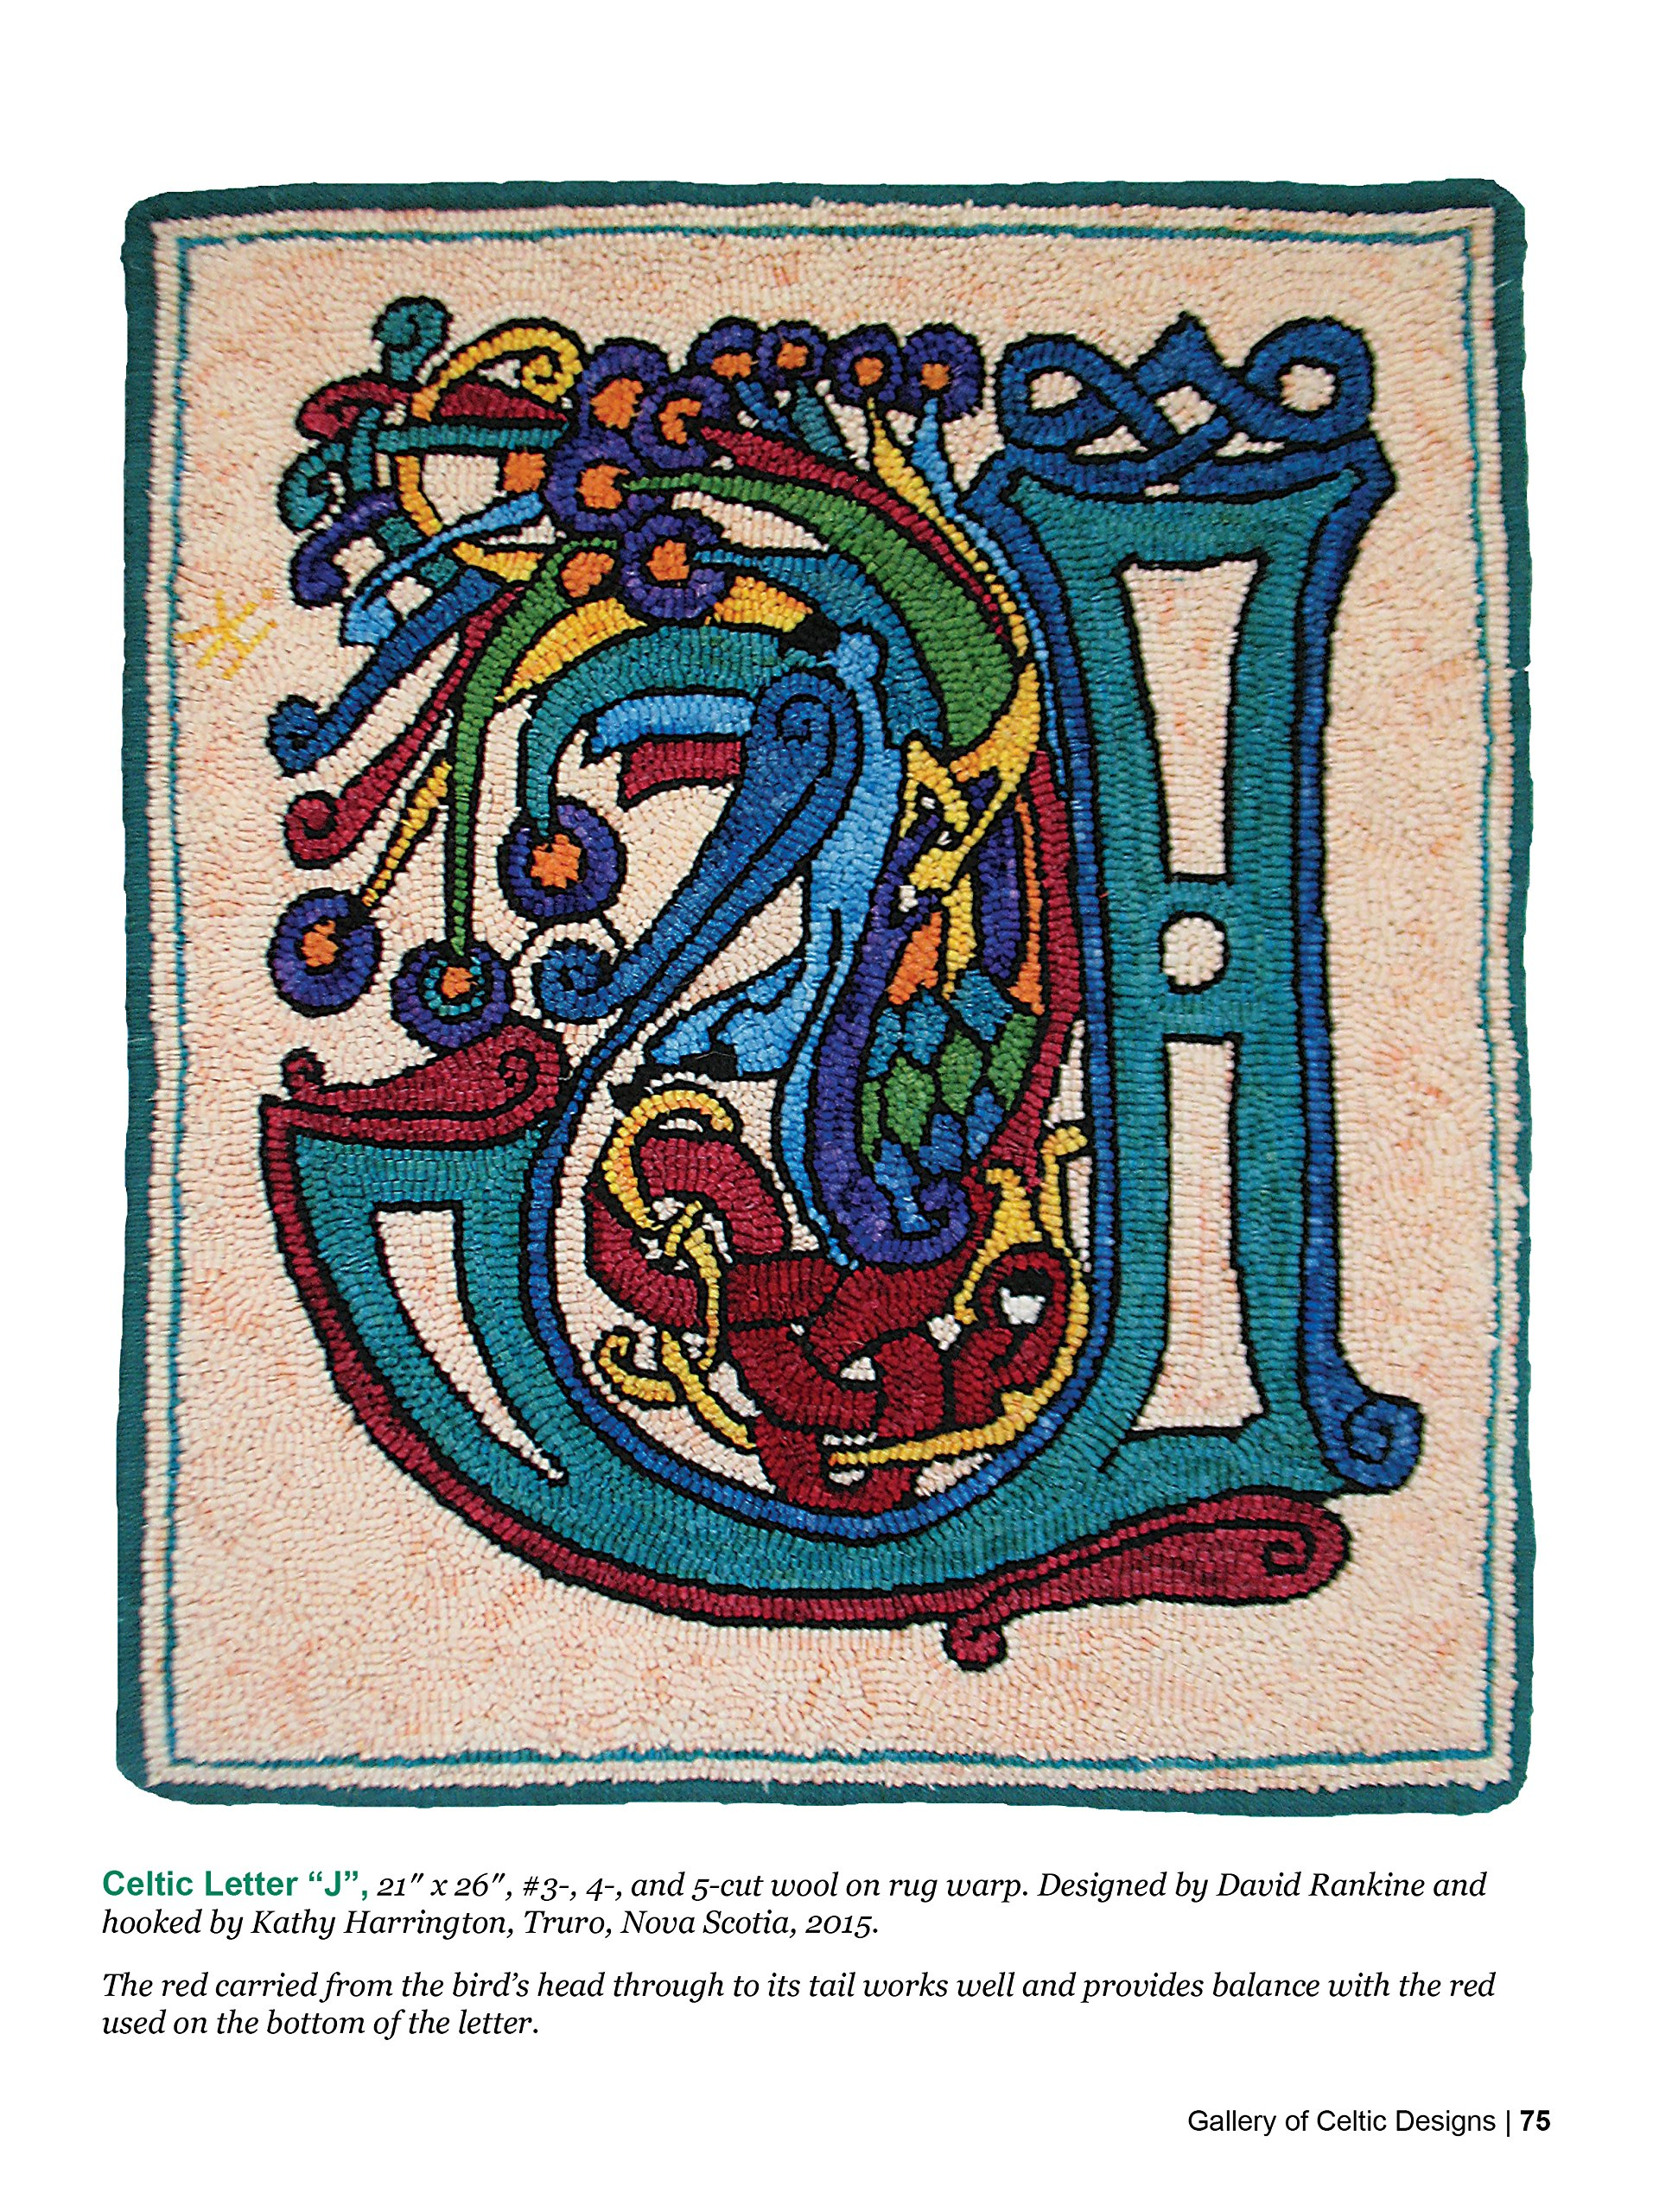 Hooked on Celtic Rugs: A Fresh Approach to Celtic Art in Rug Hooking